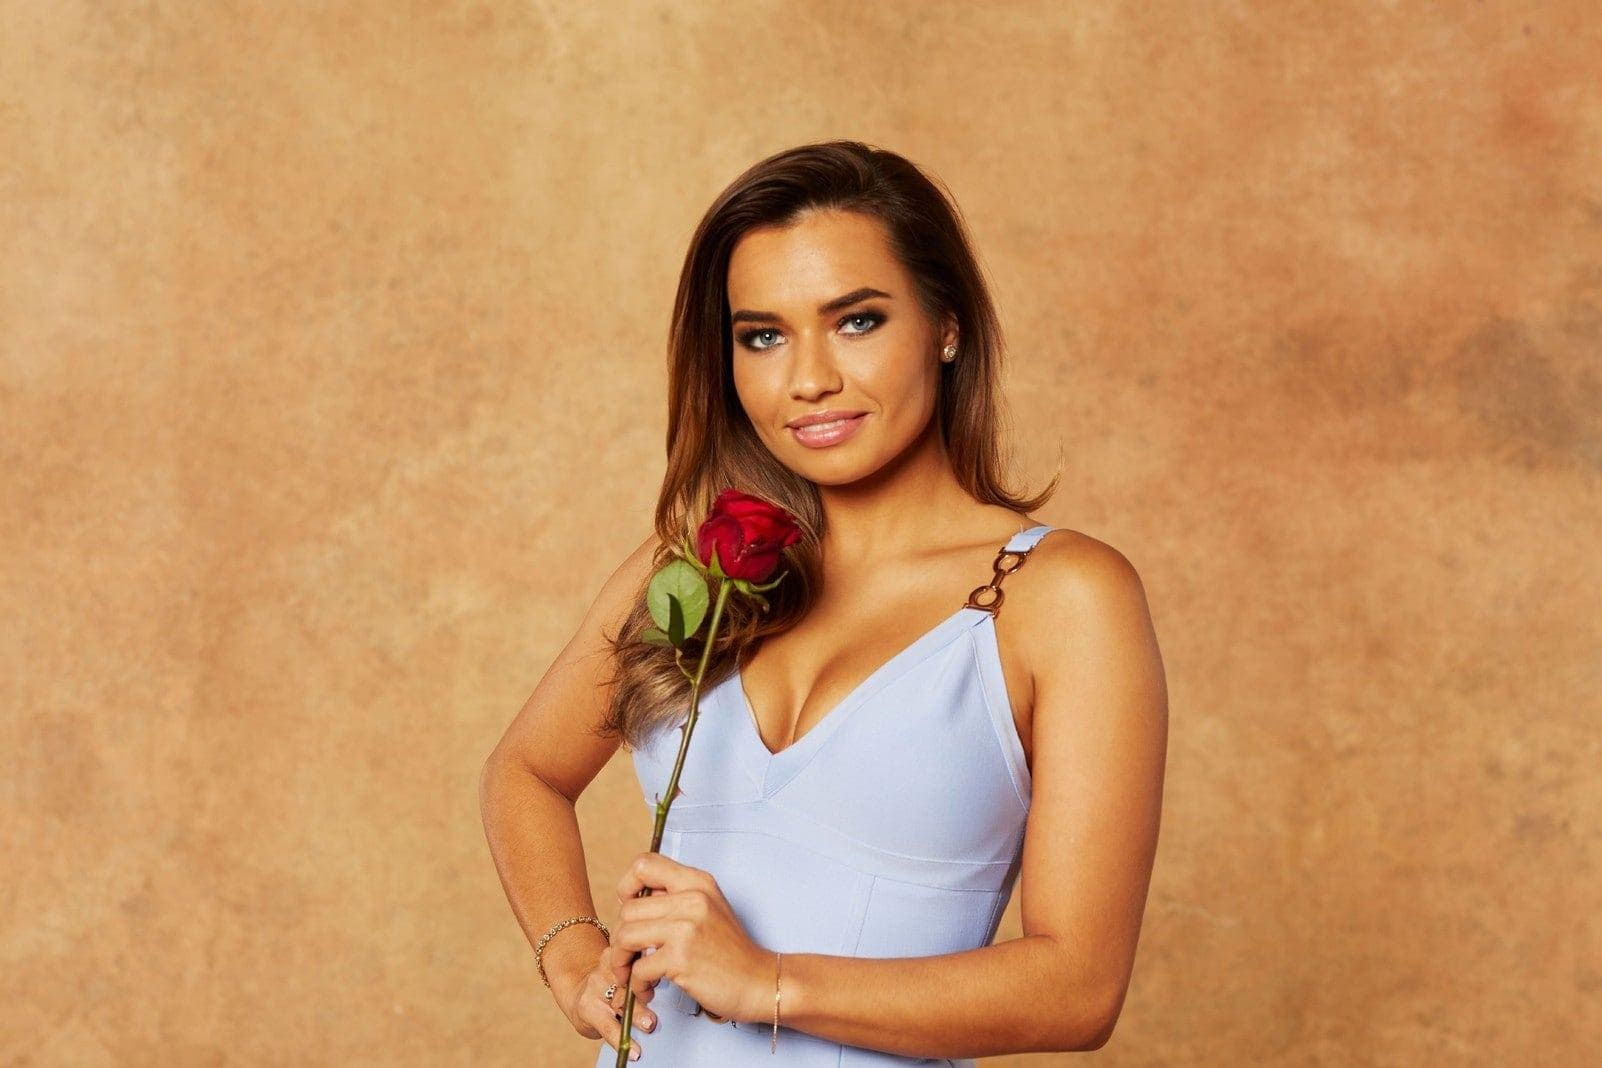 Der Bachelor Karina Rose